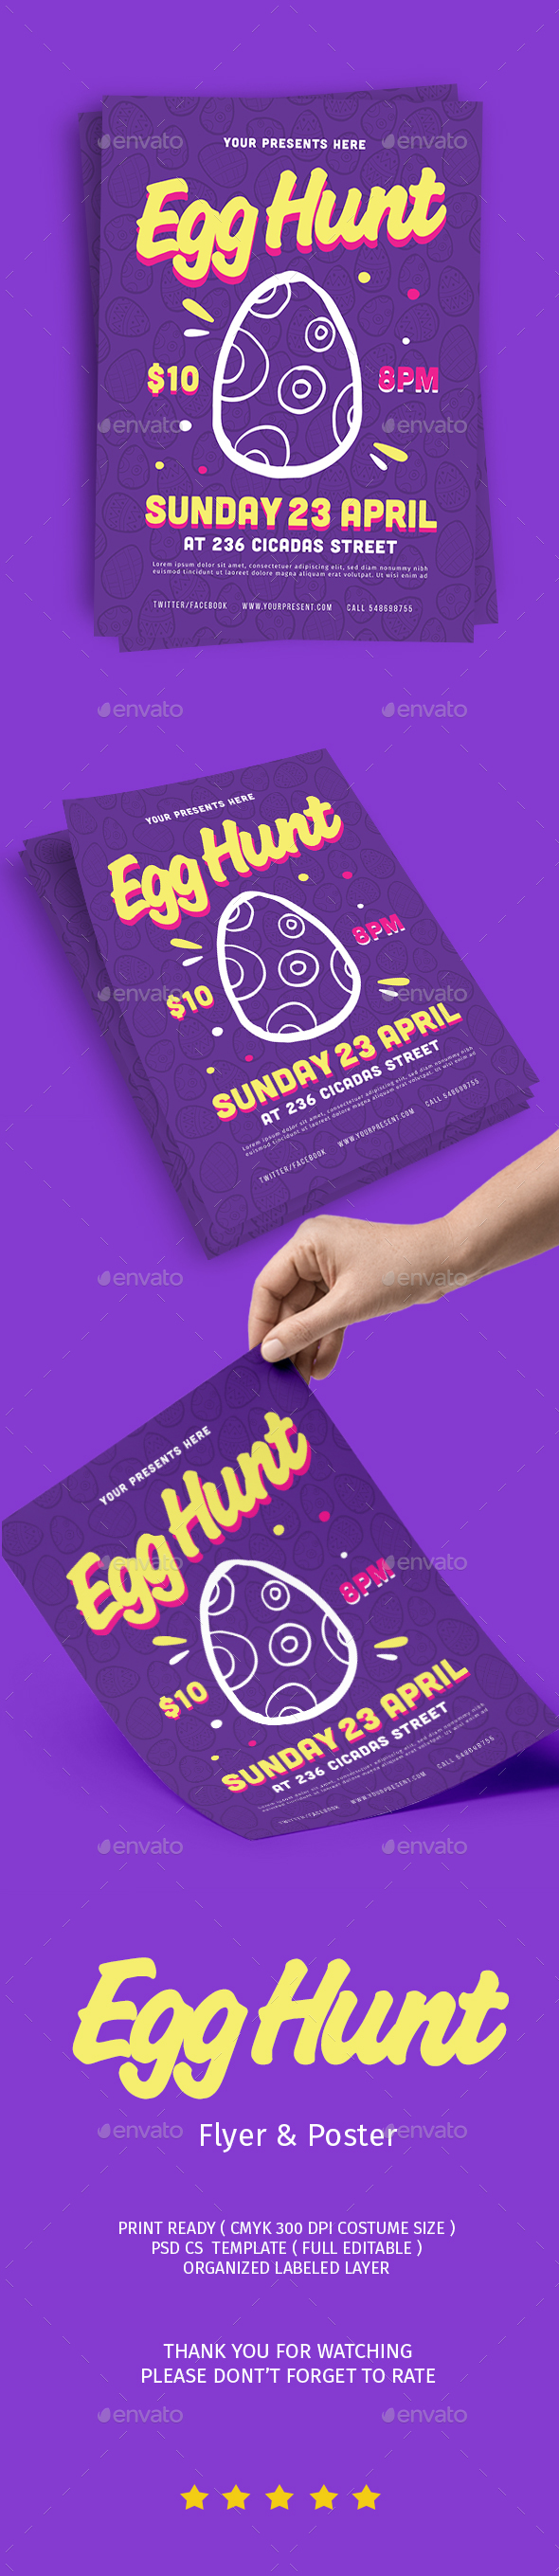 Egg Hunt Flyer - Flyers Print Templates